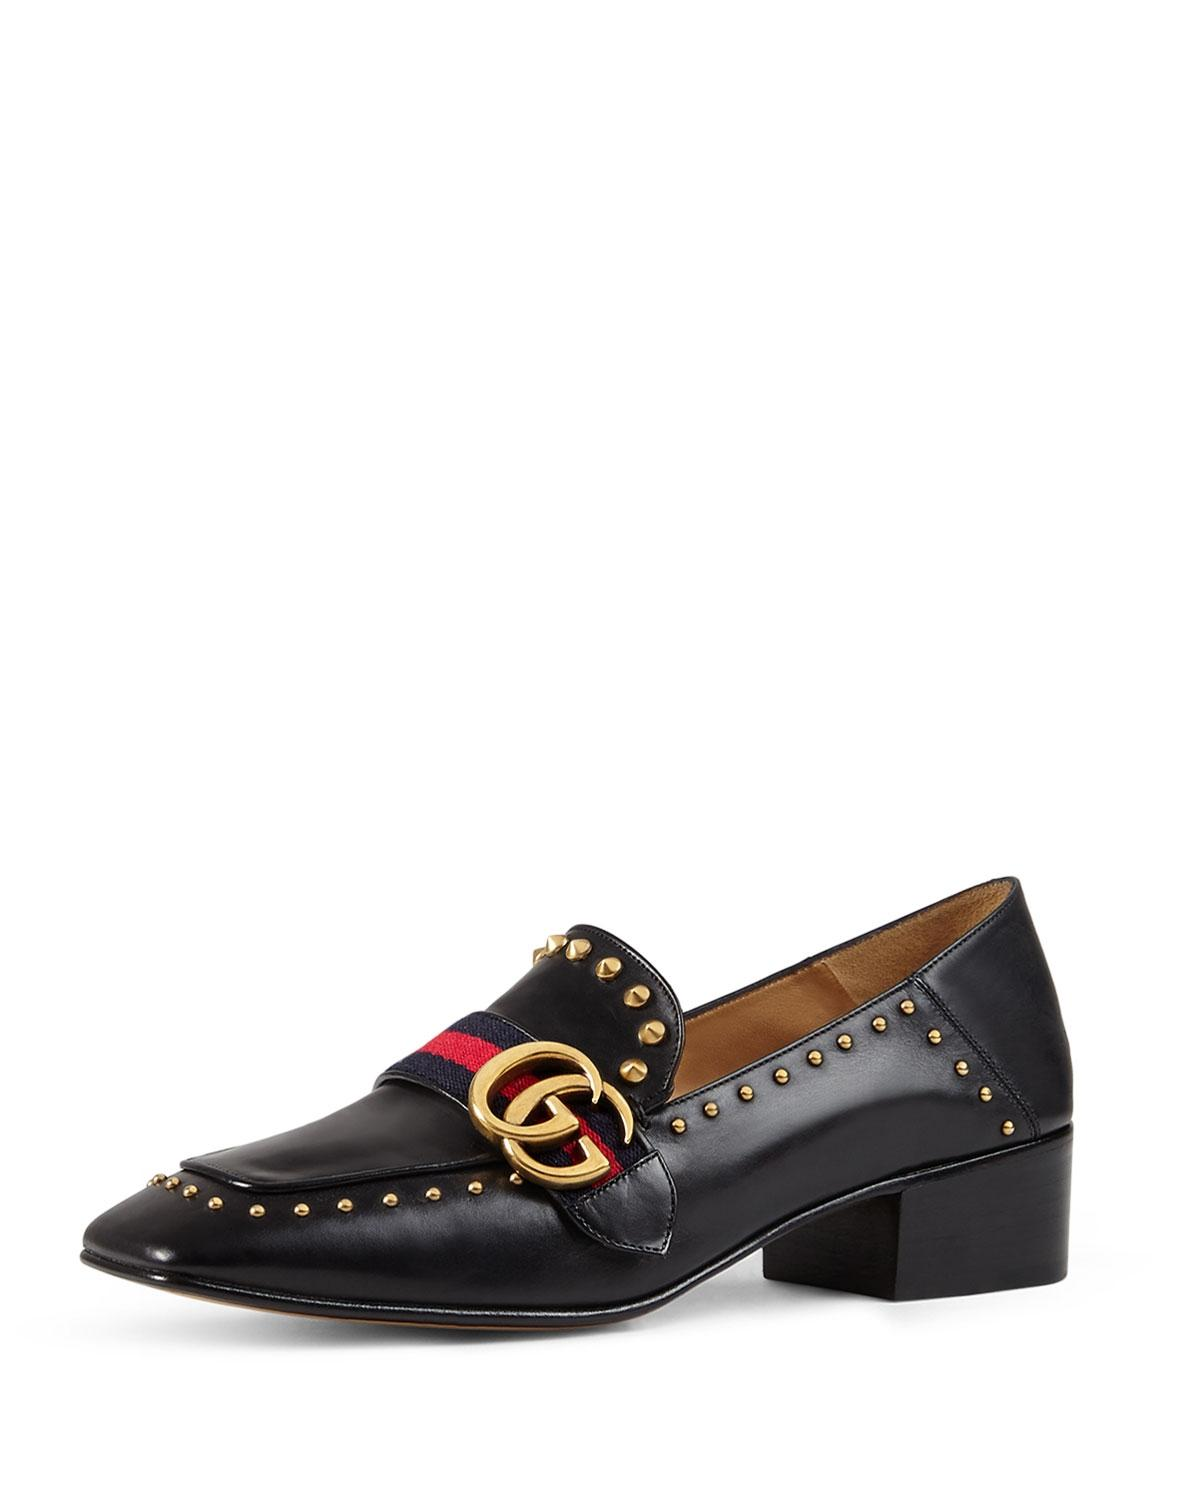 Gucci Women's Peyton Loafer Mule ryLI7